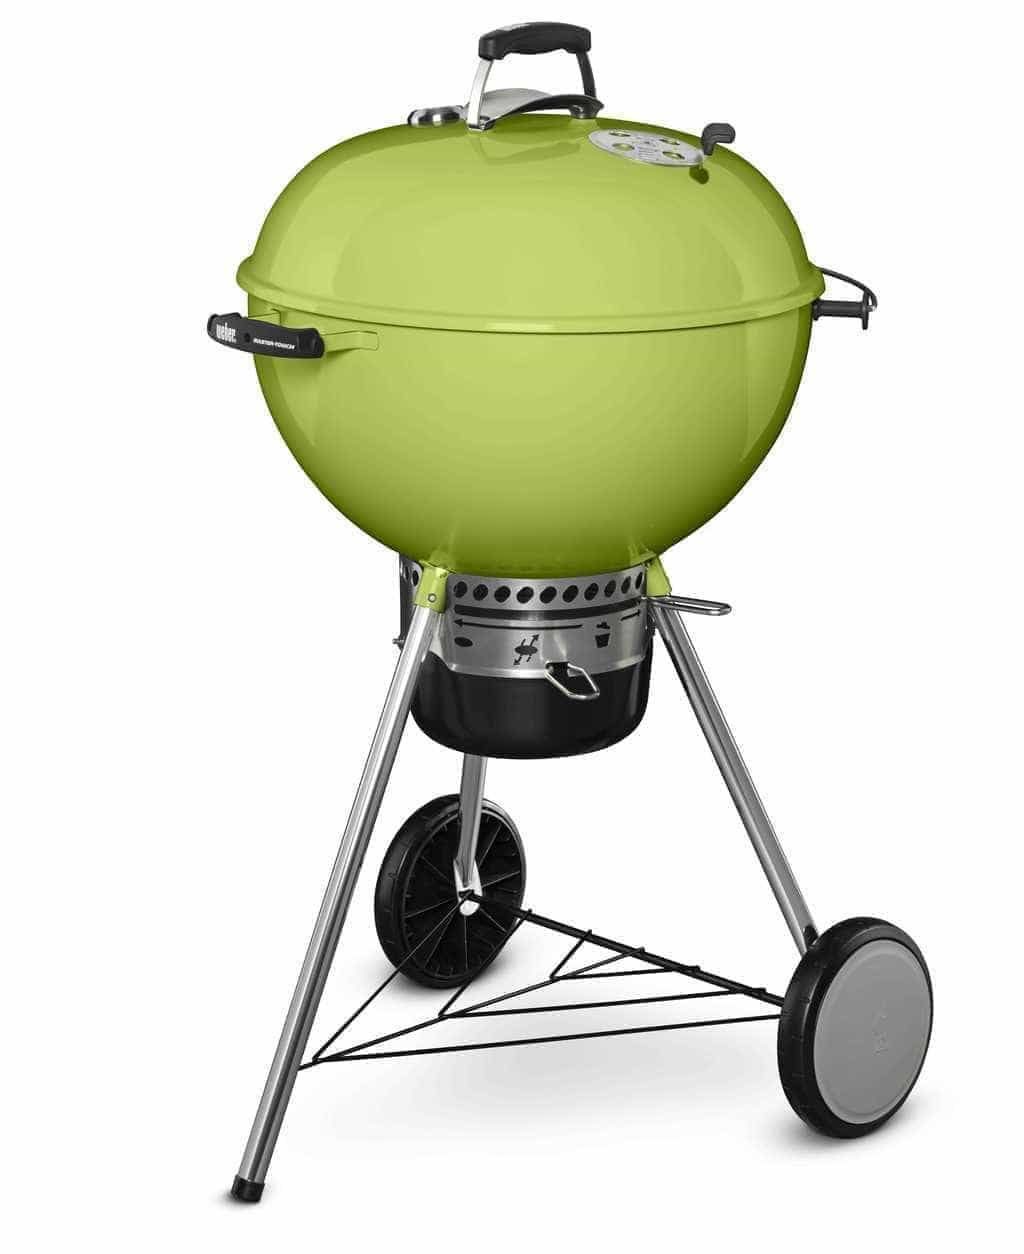 Home Hardware Kitchen Appliances Weber Master Touch Charcoal Grill Spring Green 22 Limited Edition